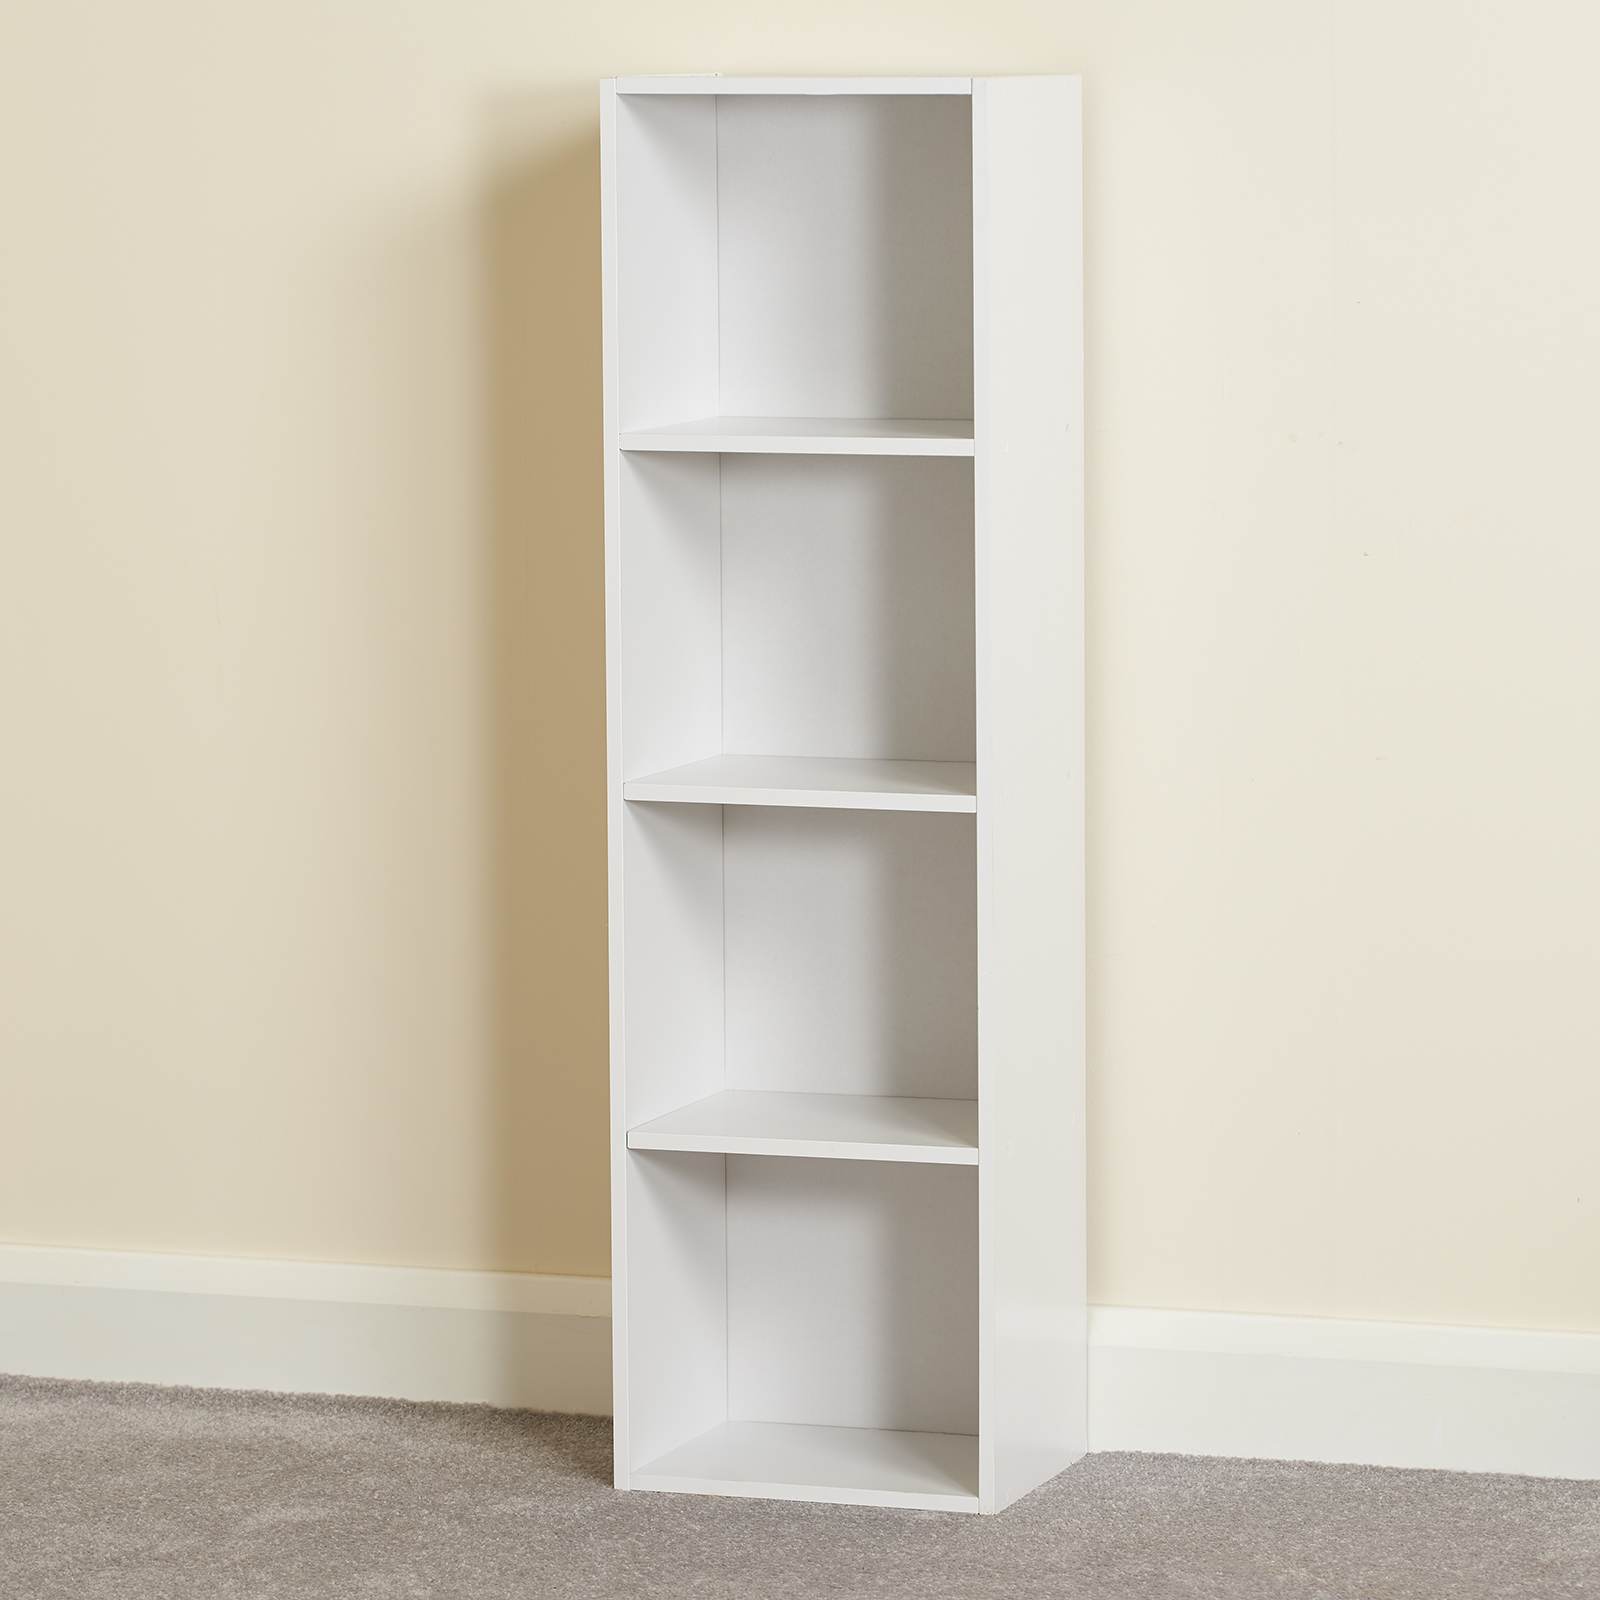 Hartleys-4-Tier-White-Bookcase-Wooden-Display-Shelving-Unit-amp-Fabric-Storage-Box thumbnail 47